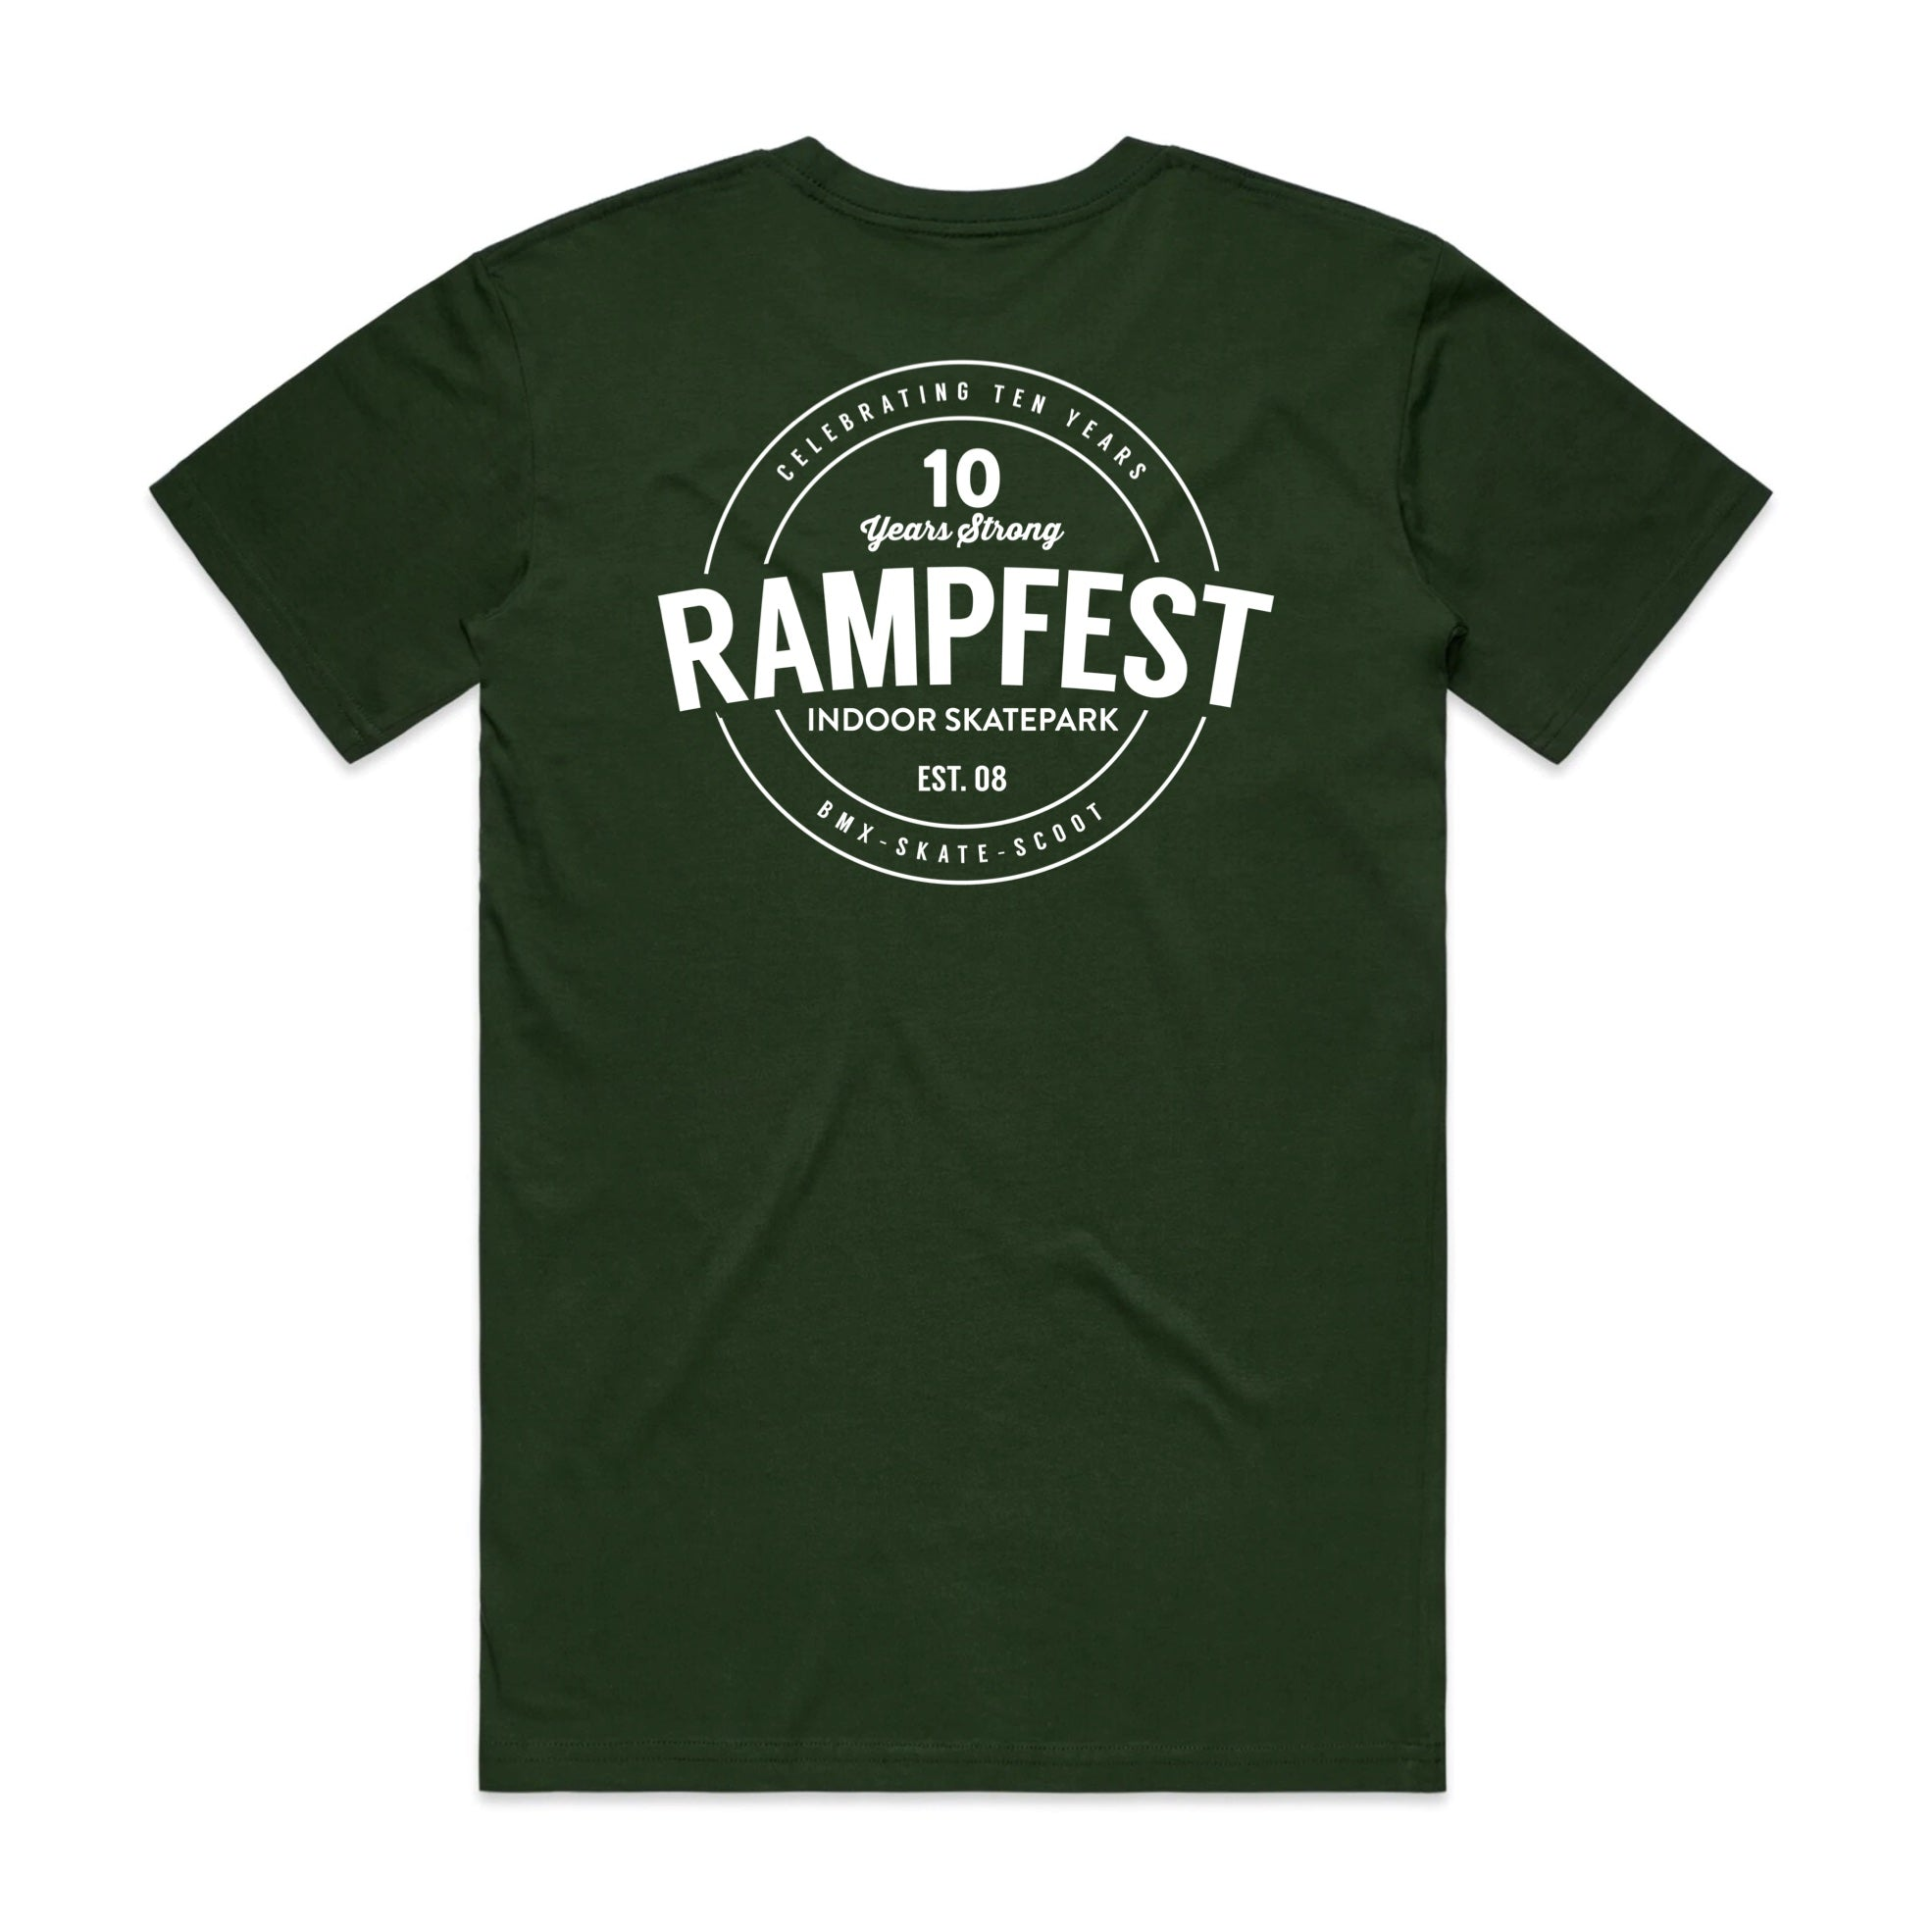 Rampfest 10 Year Anniversary Tee - Forest Green/White